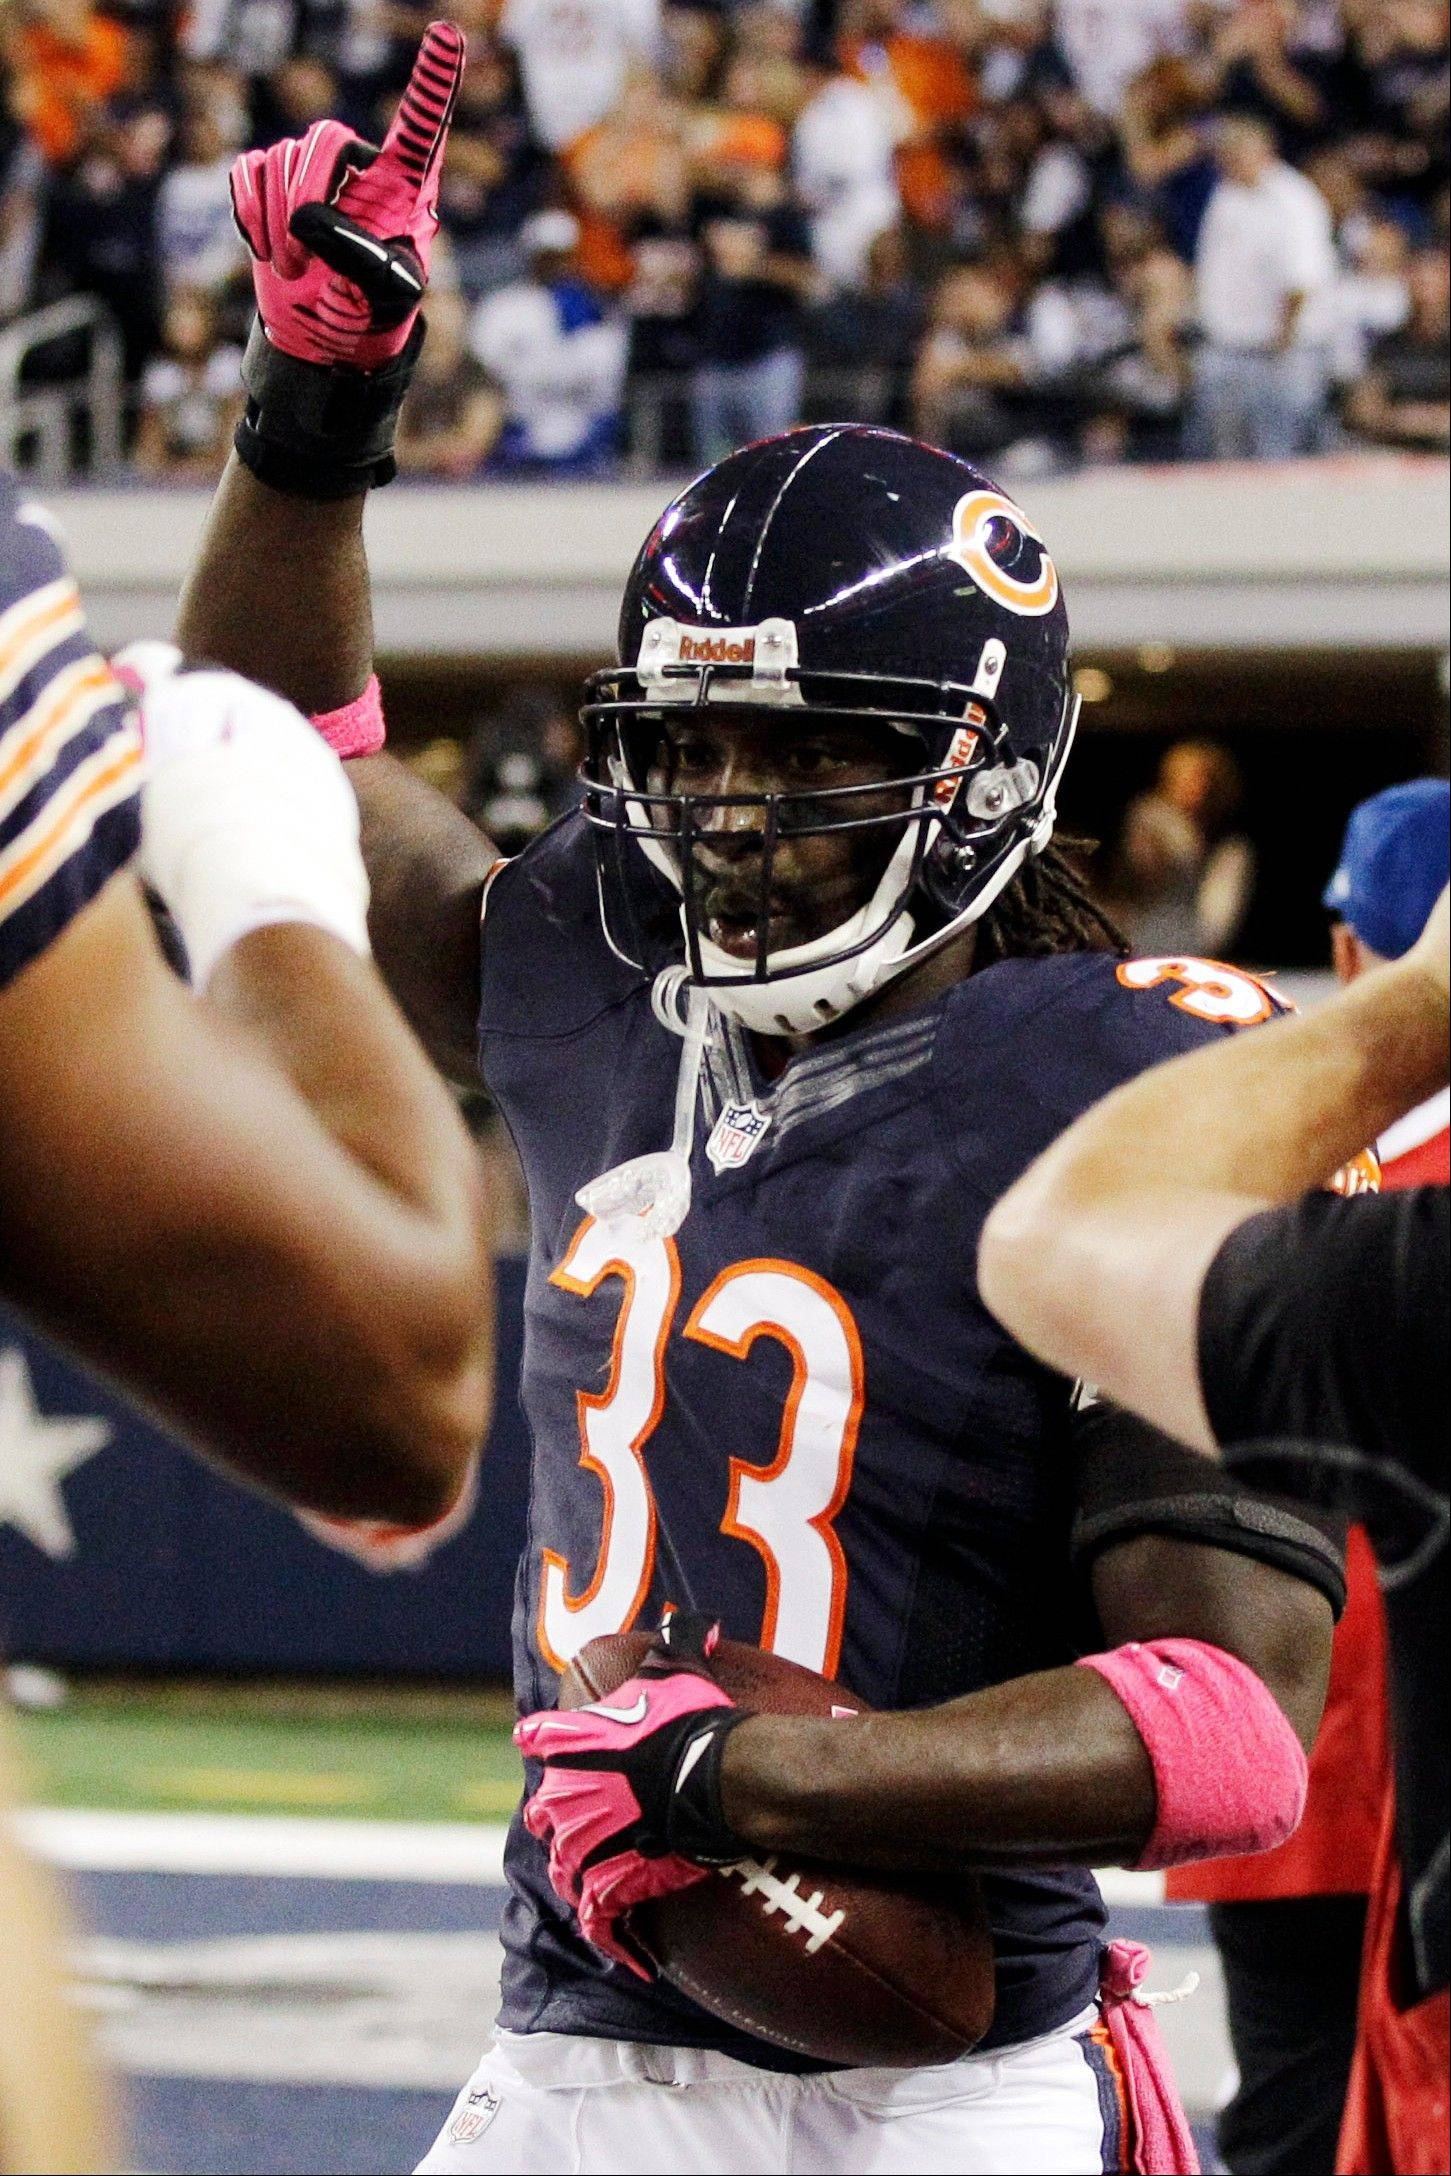 Chicago Bears cornerback Charles Tillman celebrates after returning an interception for a touchdown during the first half.